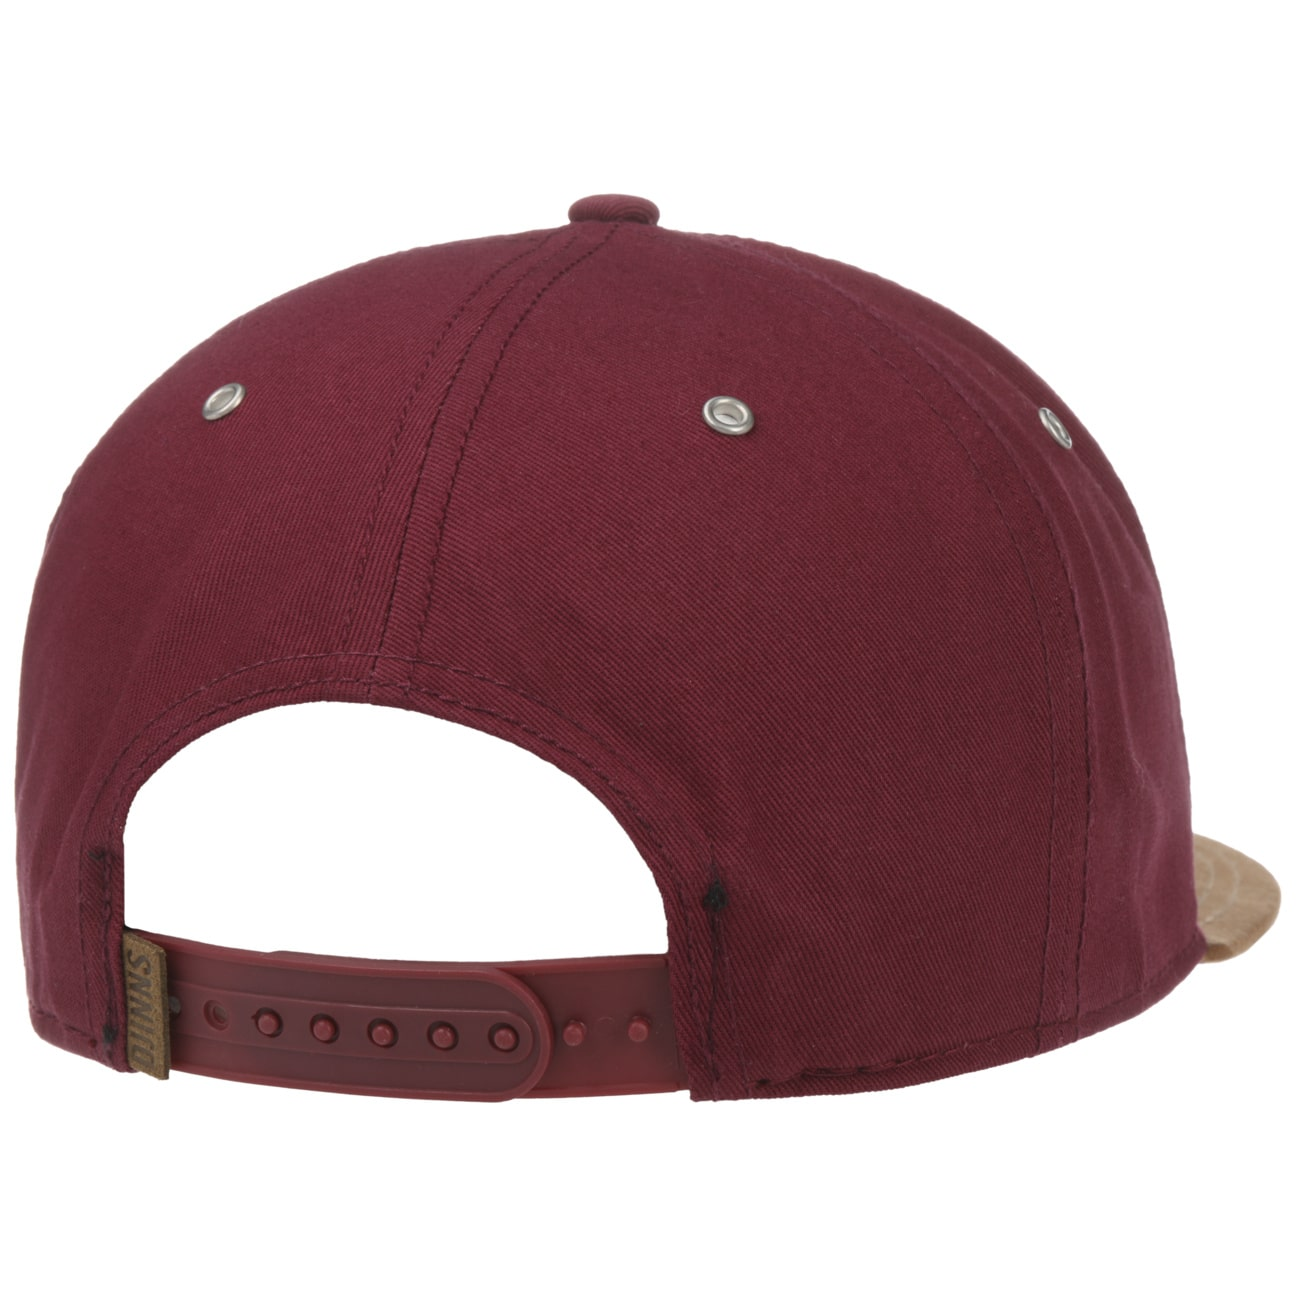 ... 6 Panel Canvas Snapback Cap by Djinns - rosso 2 ... ef3be00a6990